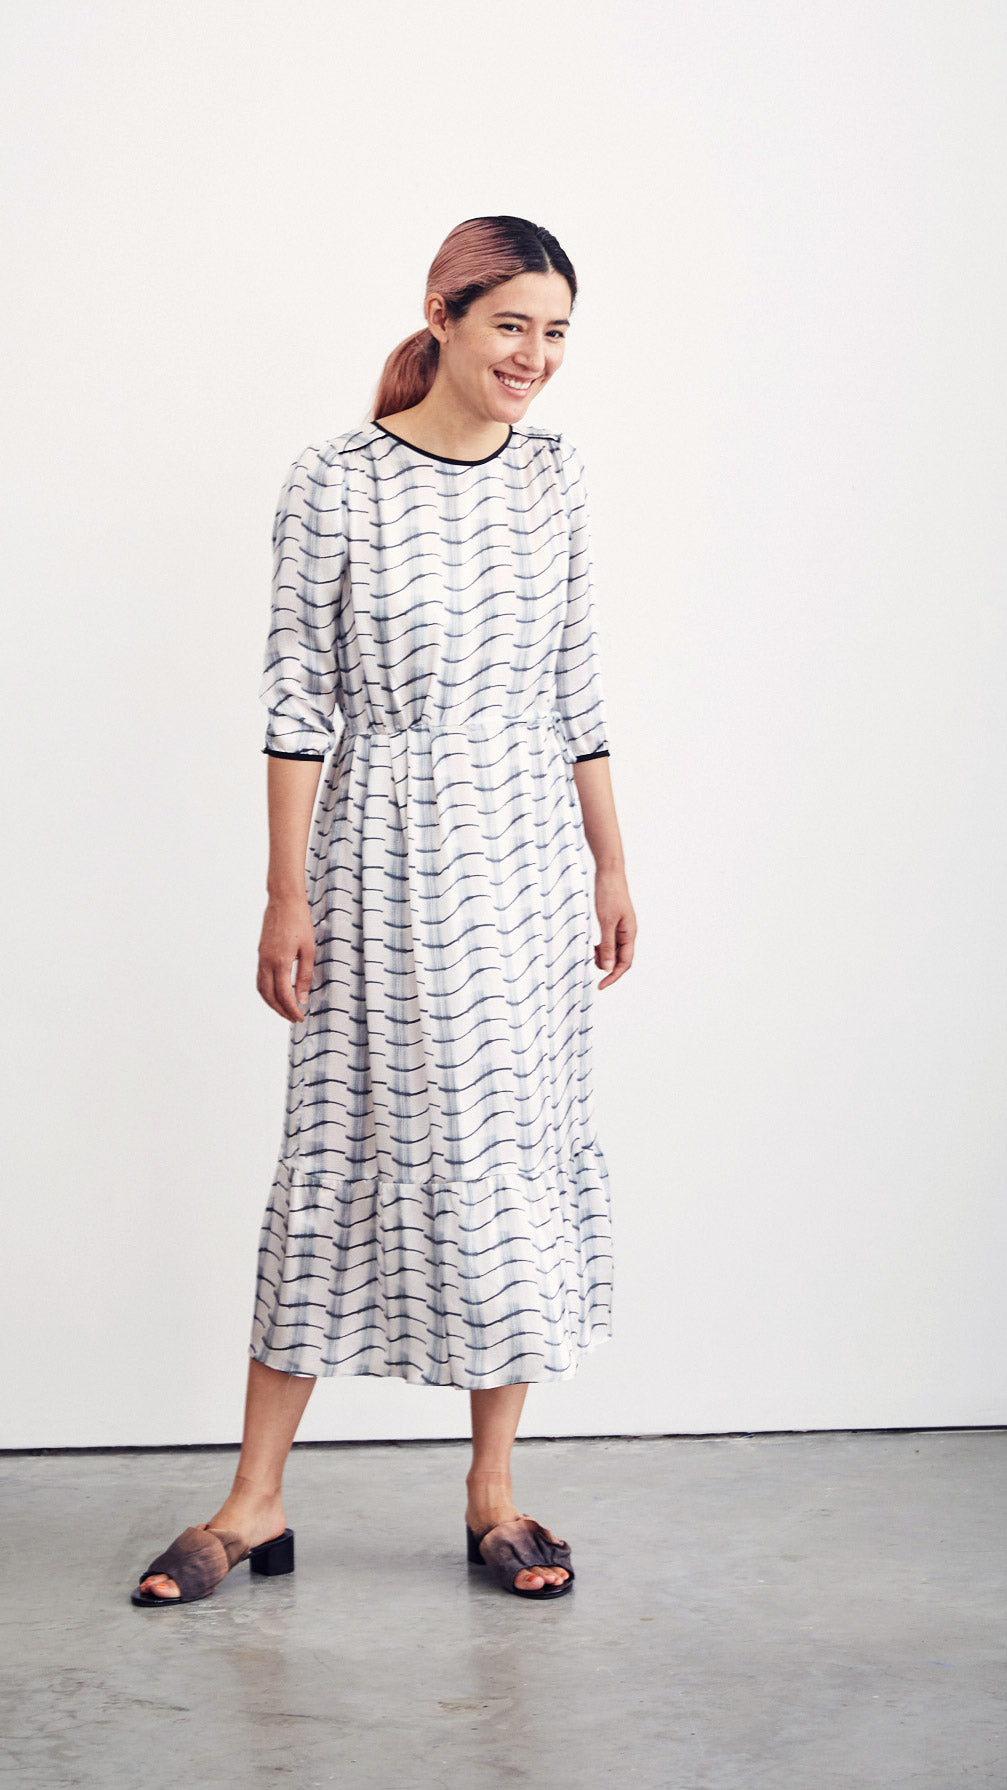 CLEMENTINE DRESS / curtain on eggshell